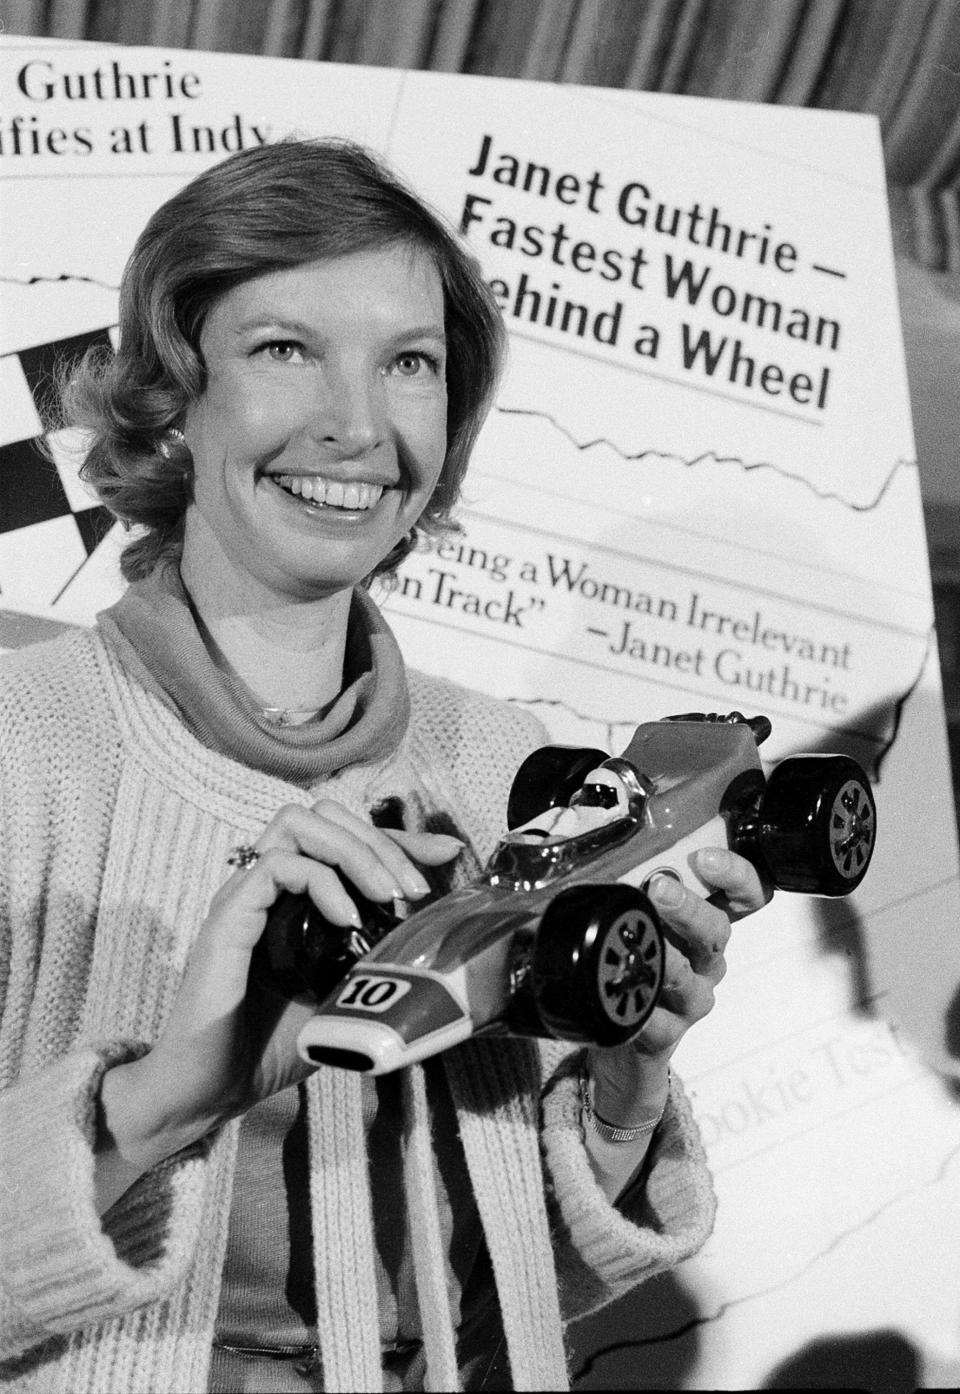 FILE - Janet Guthrie poses with a toy race car at a news conference in New York, in this April 6, 1978, file photo. Janet Guthrie is still astonished at all the fan mail that pours in from around the world. And she's honored to hear that Academy Award winner Hilary Swank wants to portray her in a movie. Forty-four years after her history making run at the Indianapolis 500, Guthrie's impact on the growth of female sports is certainly a legacy worth remembering. (AP Photo/Marty Lederhandler, File)